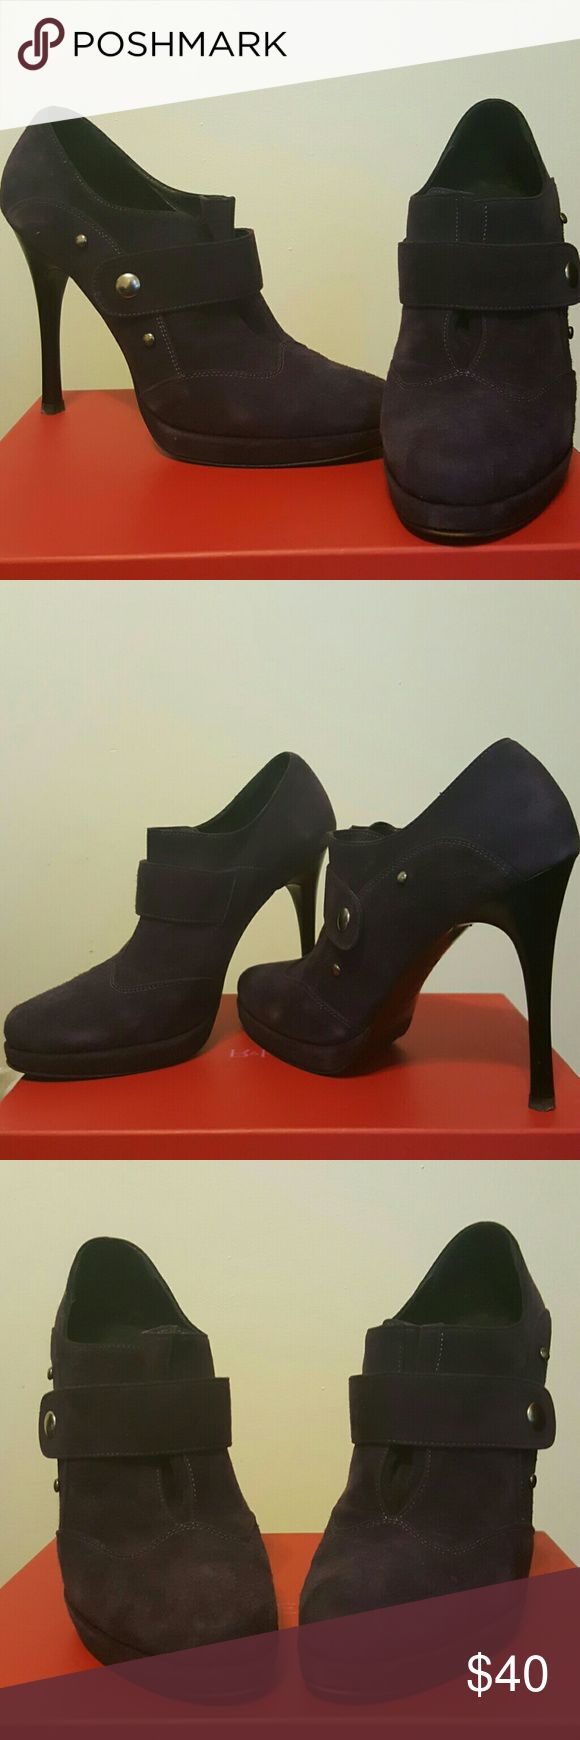 Reposh - Dark purple suede stiletto booties Purple suede booties with black stiletto heels and silver snaps. In original box. Camoscio Viola 392501.  Marked size 40 but I wear a 10 and they were too small so listing as 9.5 Shoes Ankle Boots & Booties